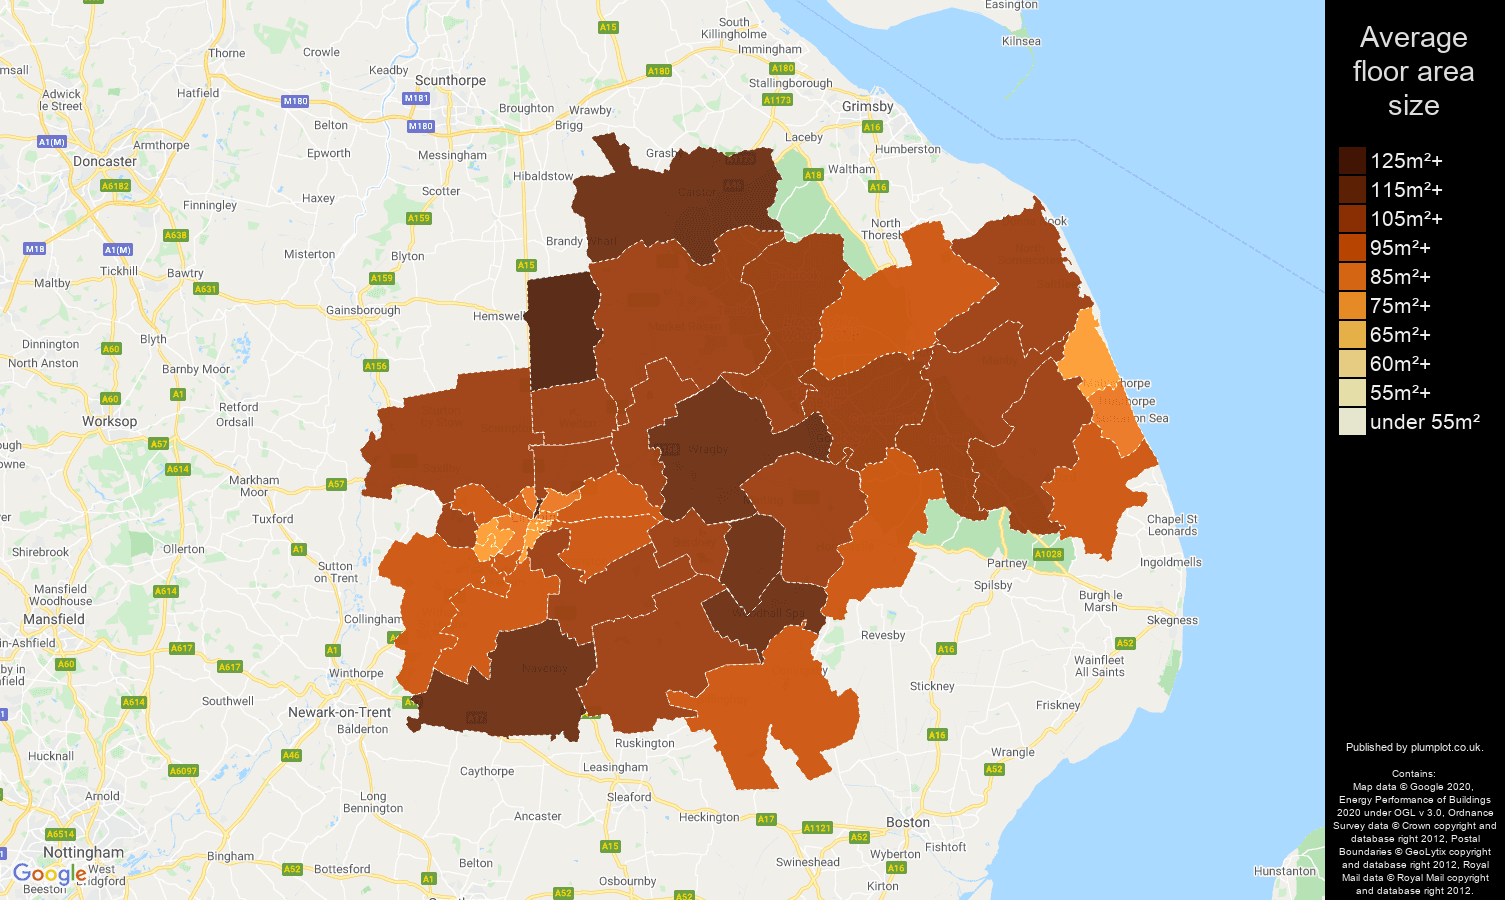 Lincoln map of average floor area size of houses